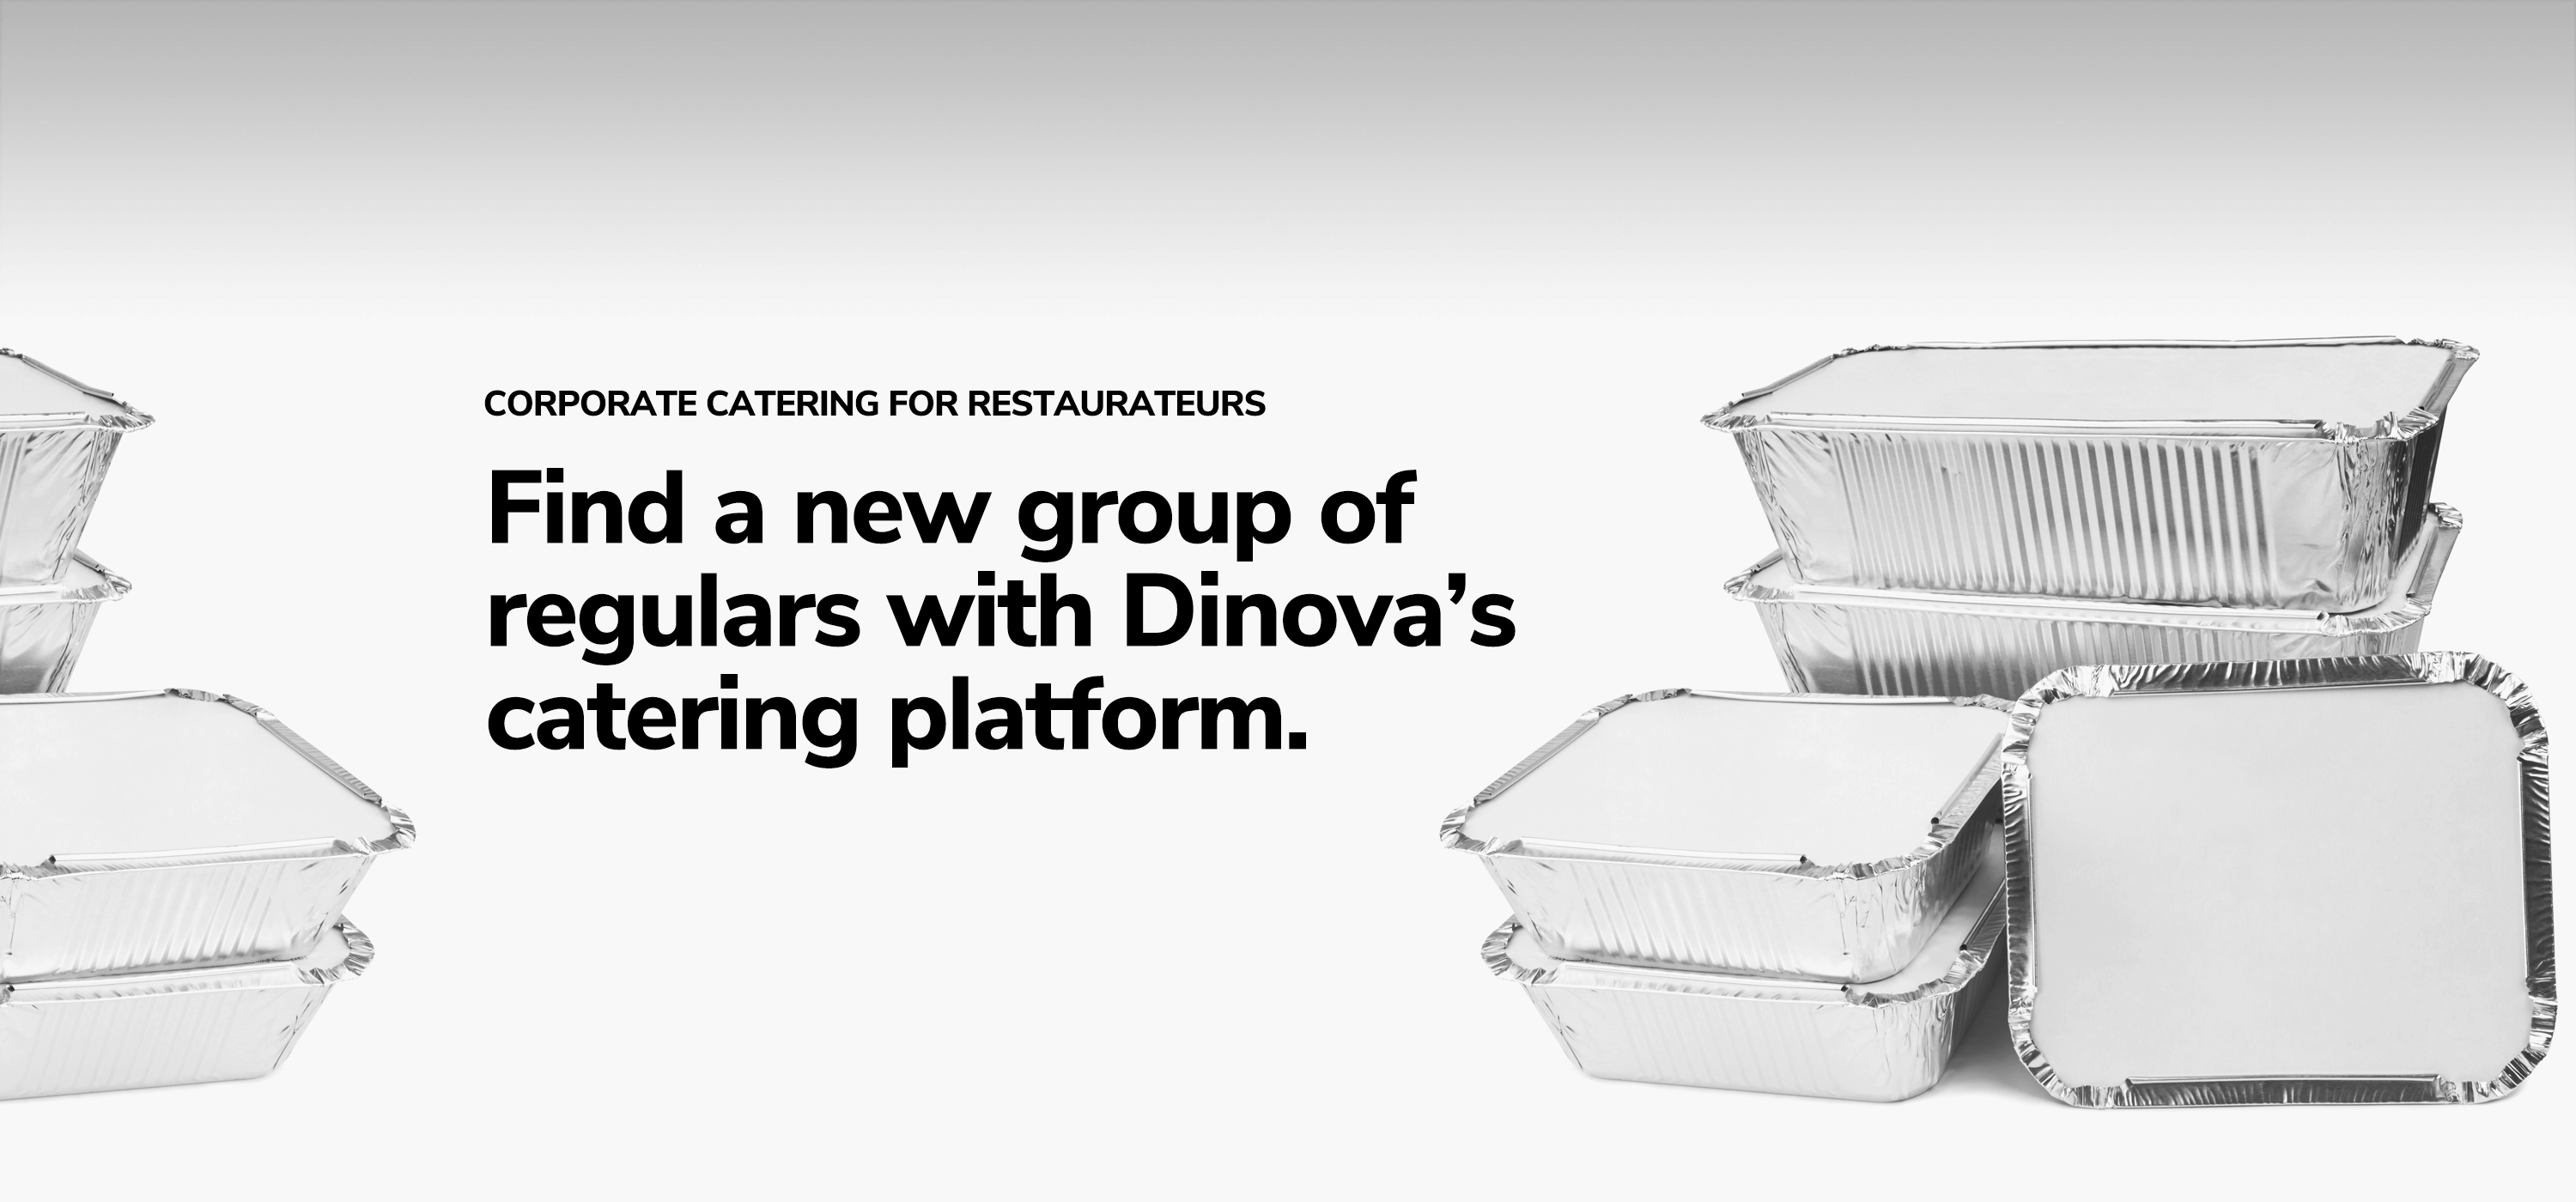 Corporate catering for restaurateurs